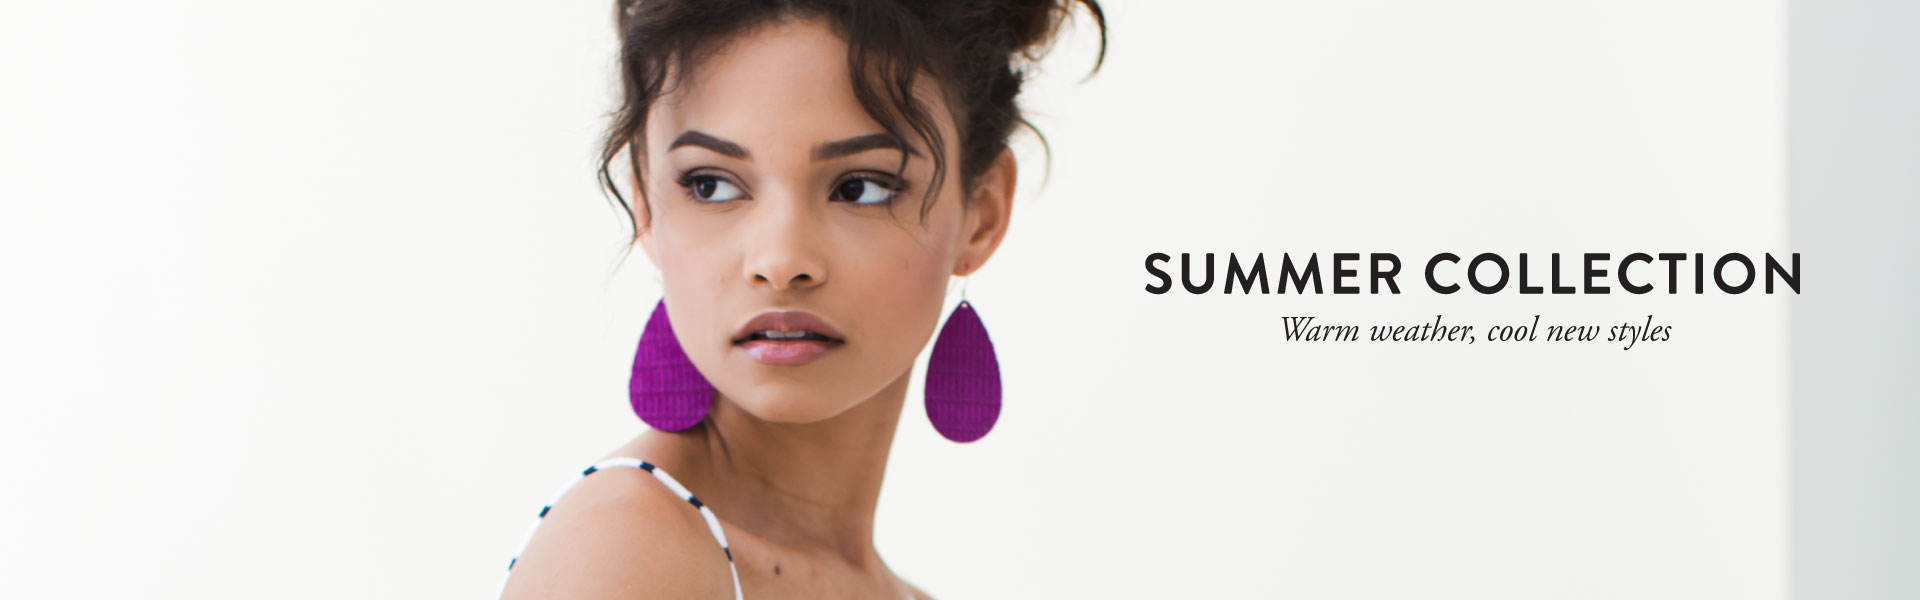 The New Summer Collection